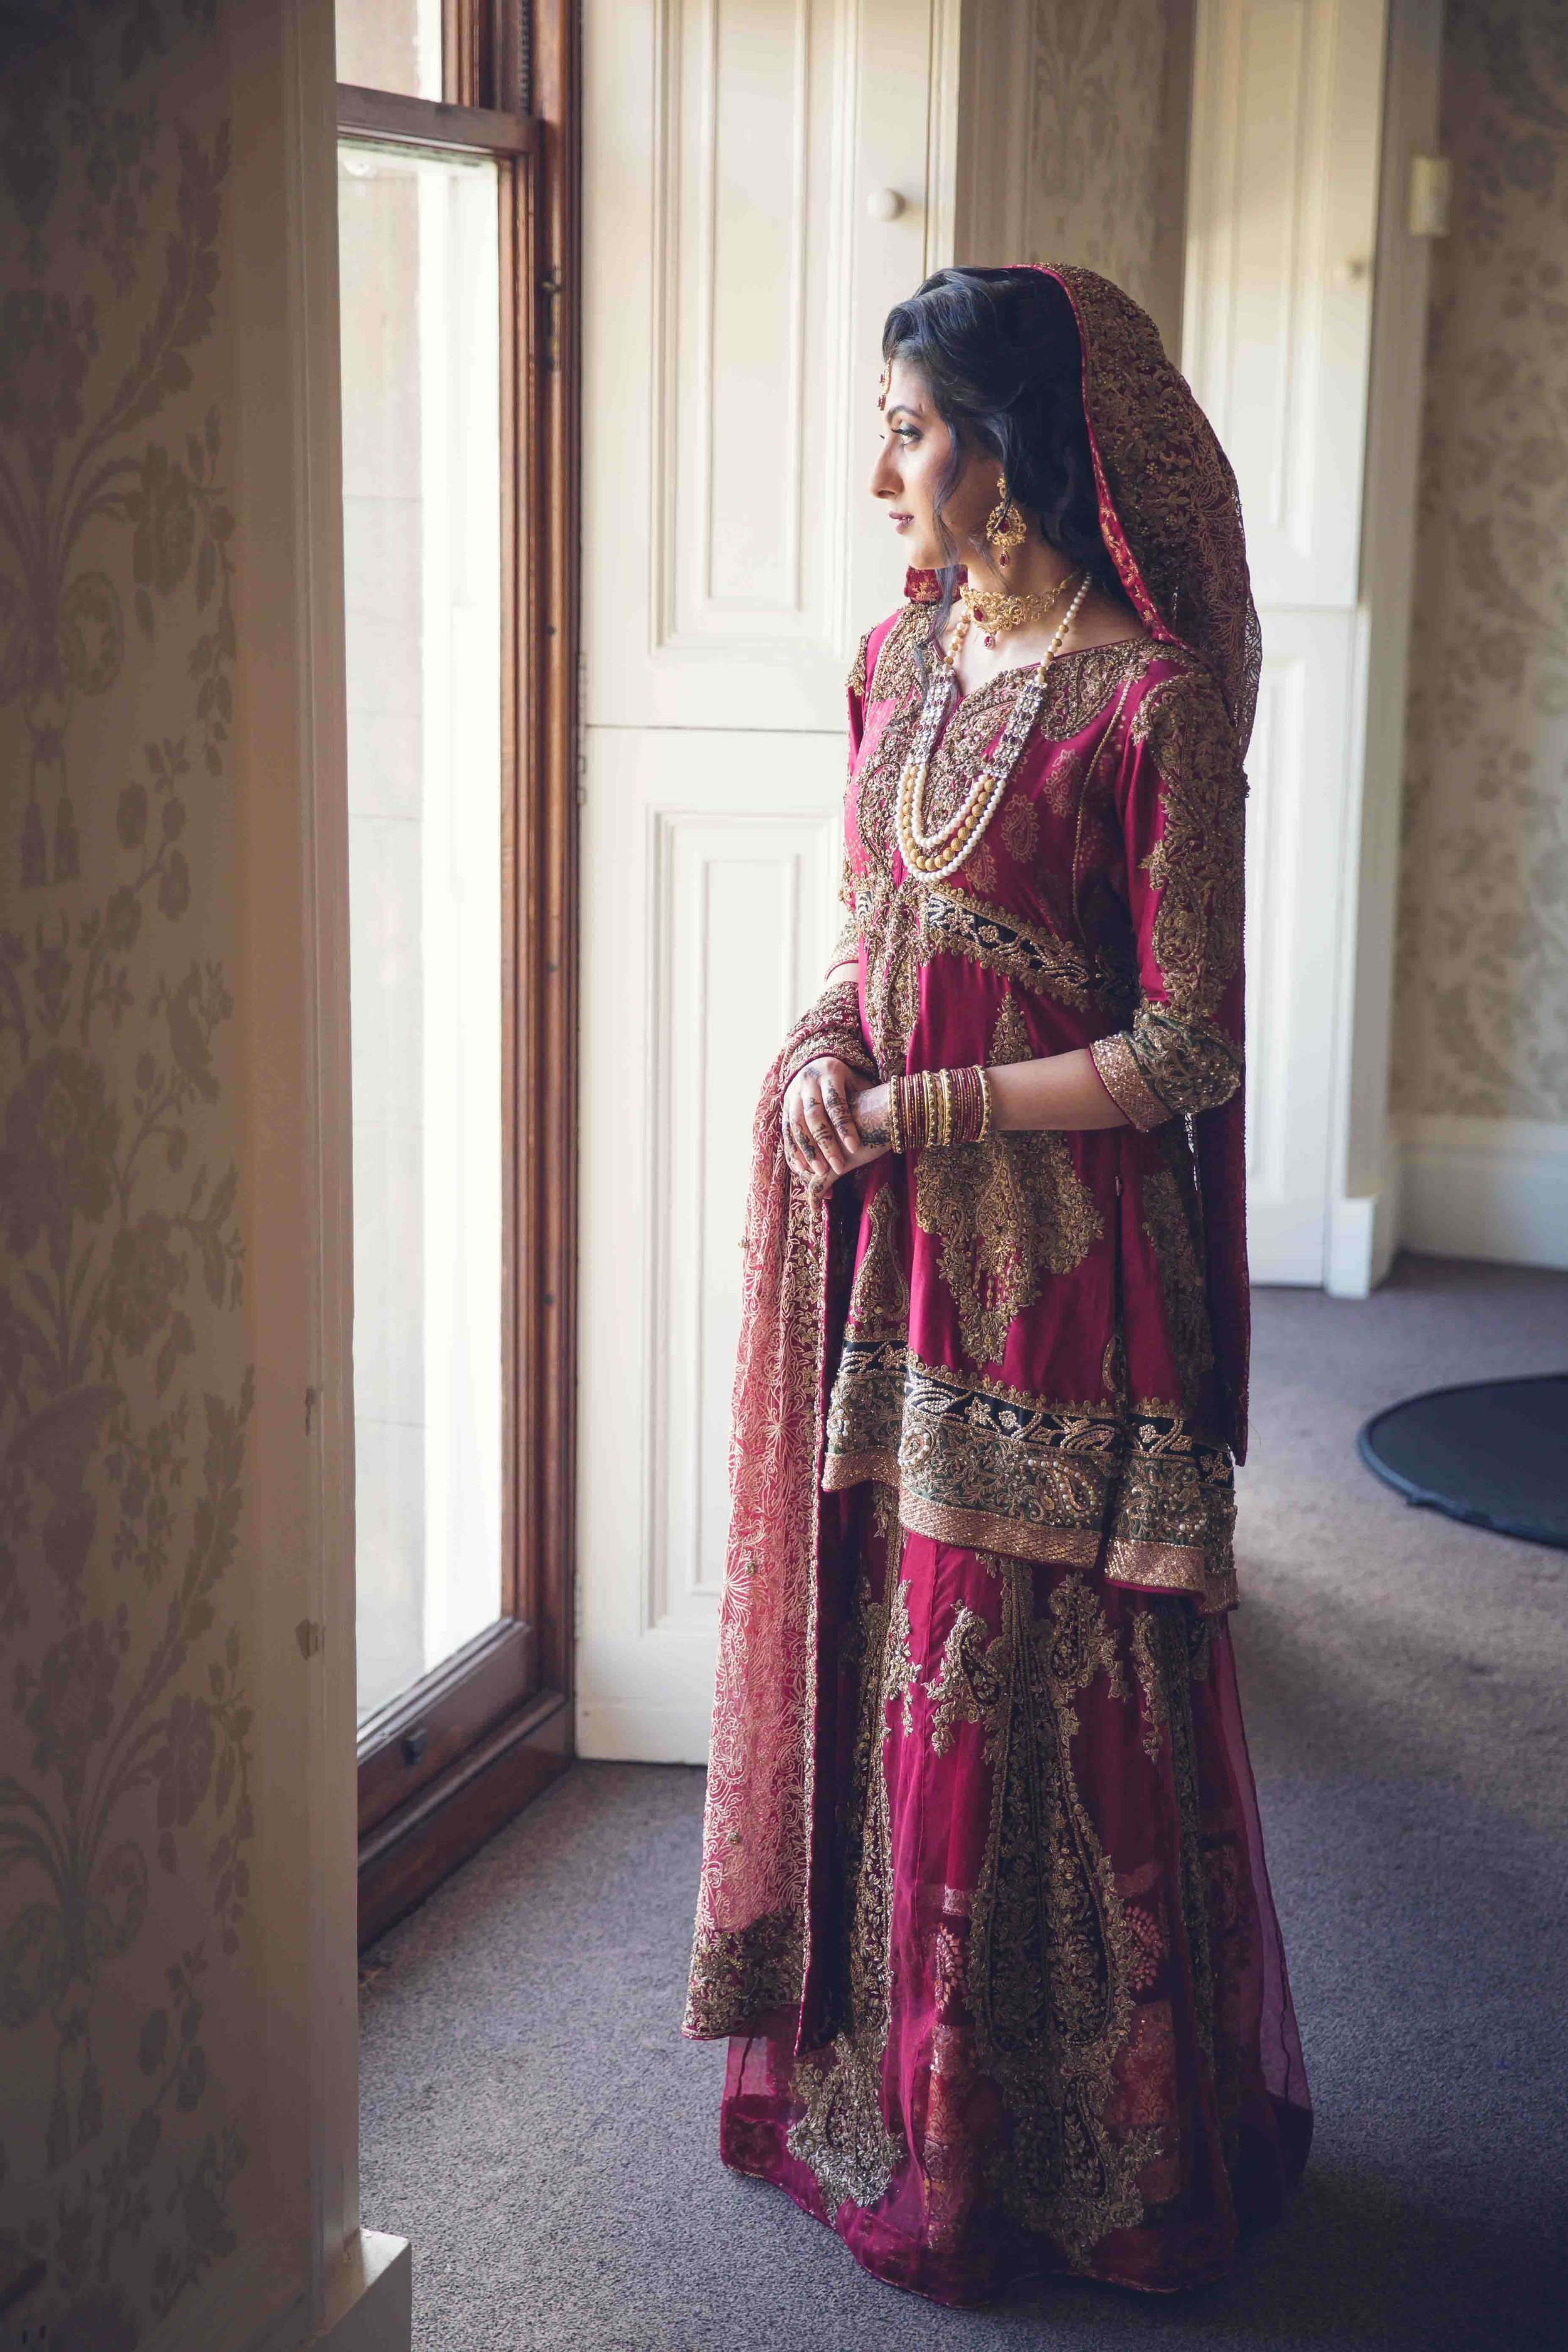 Opu Sultan Photography Asian wedding photography scotland edinburgh glasgow manchester birmingham london-272.jpg